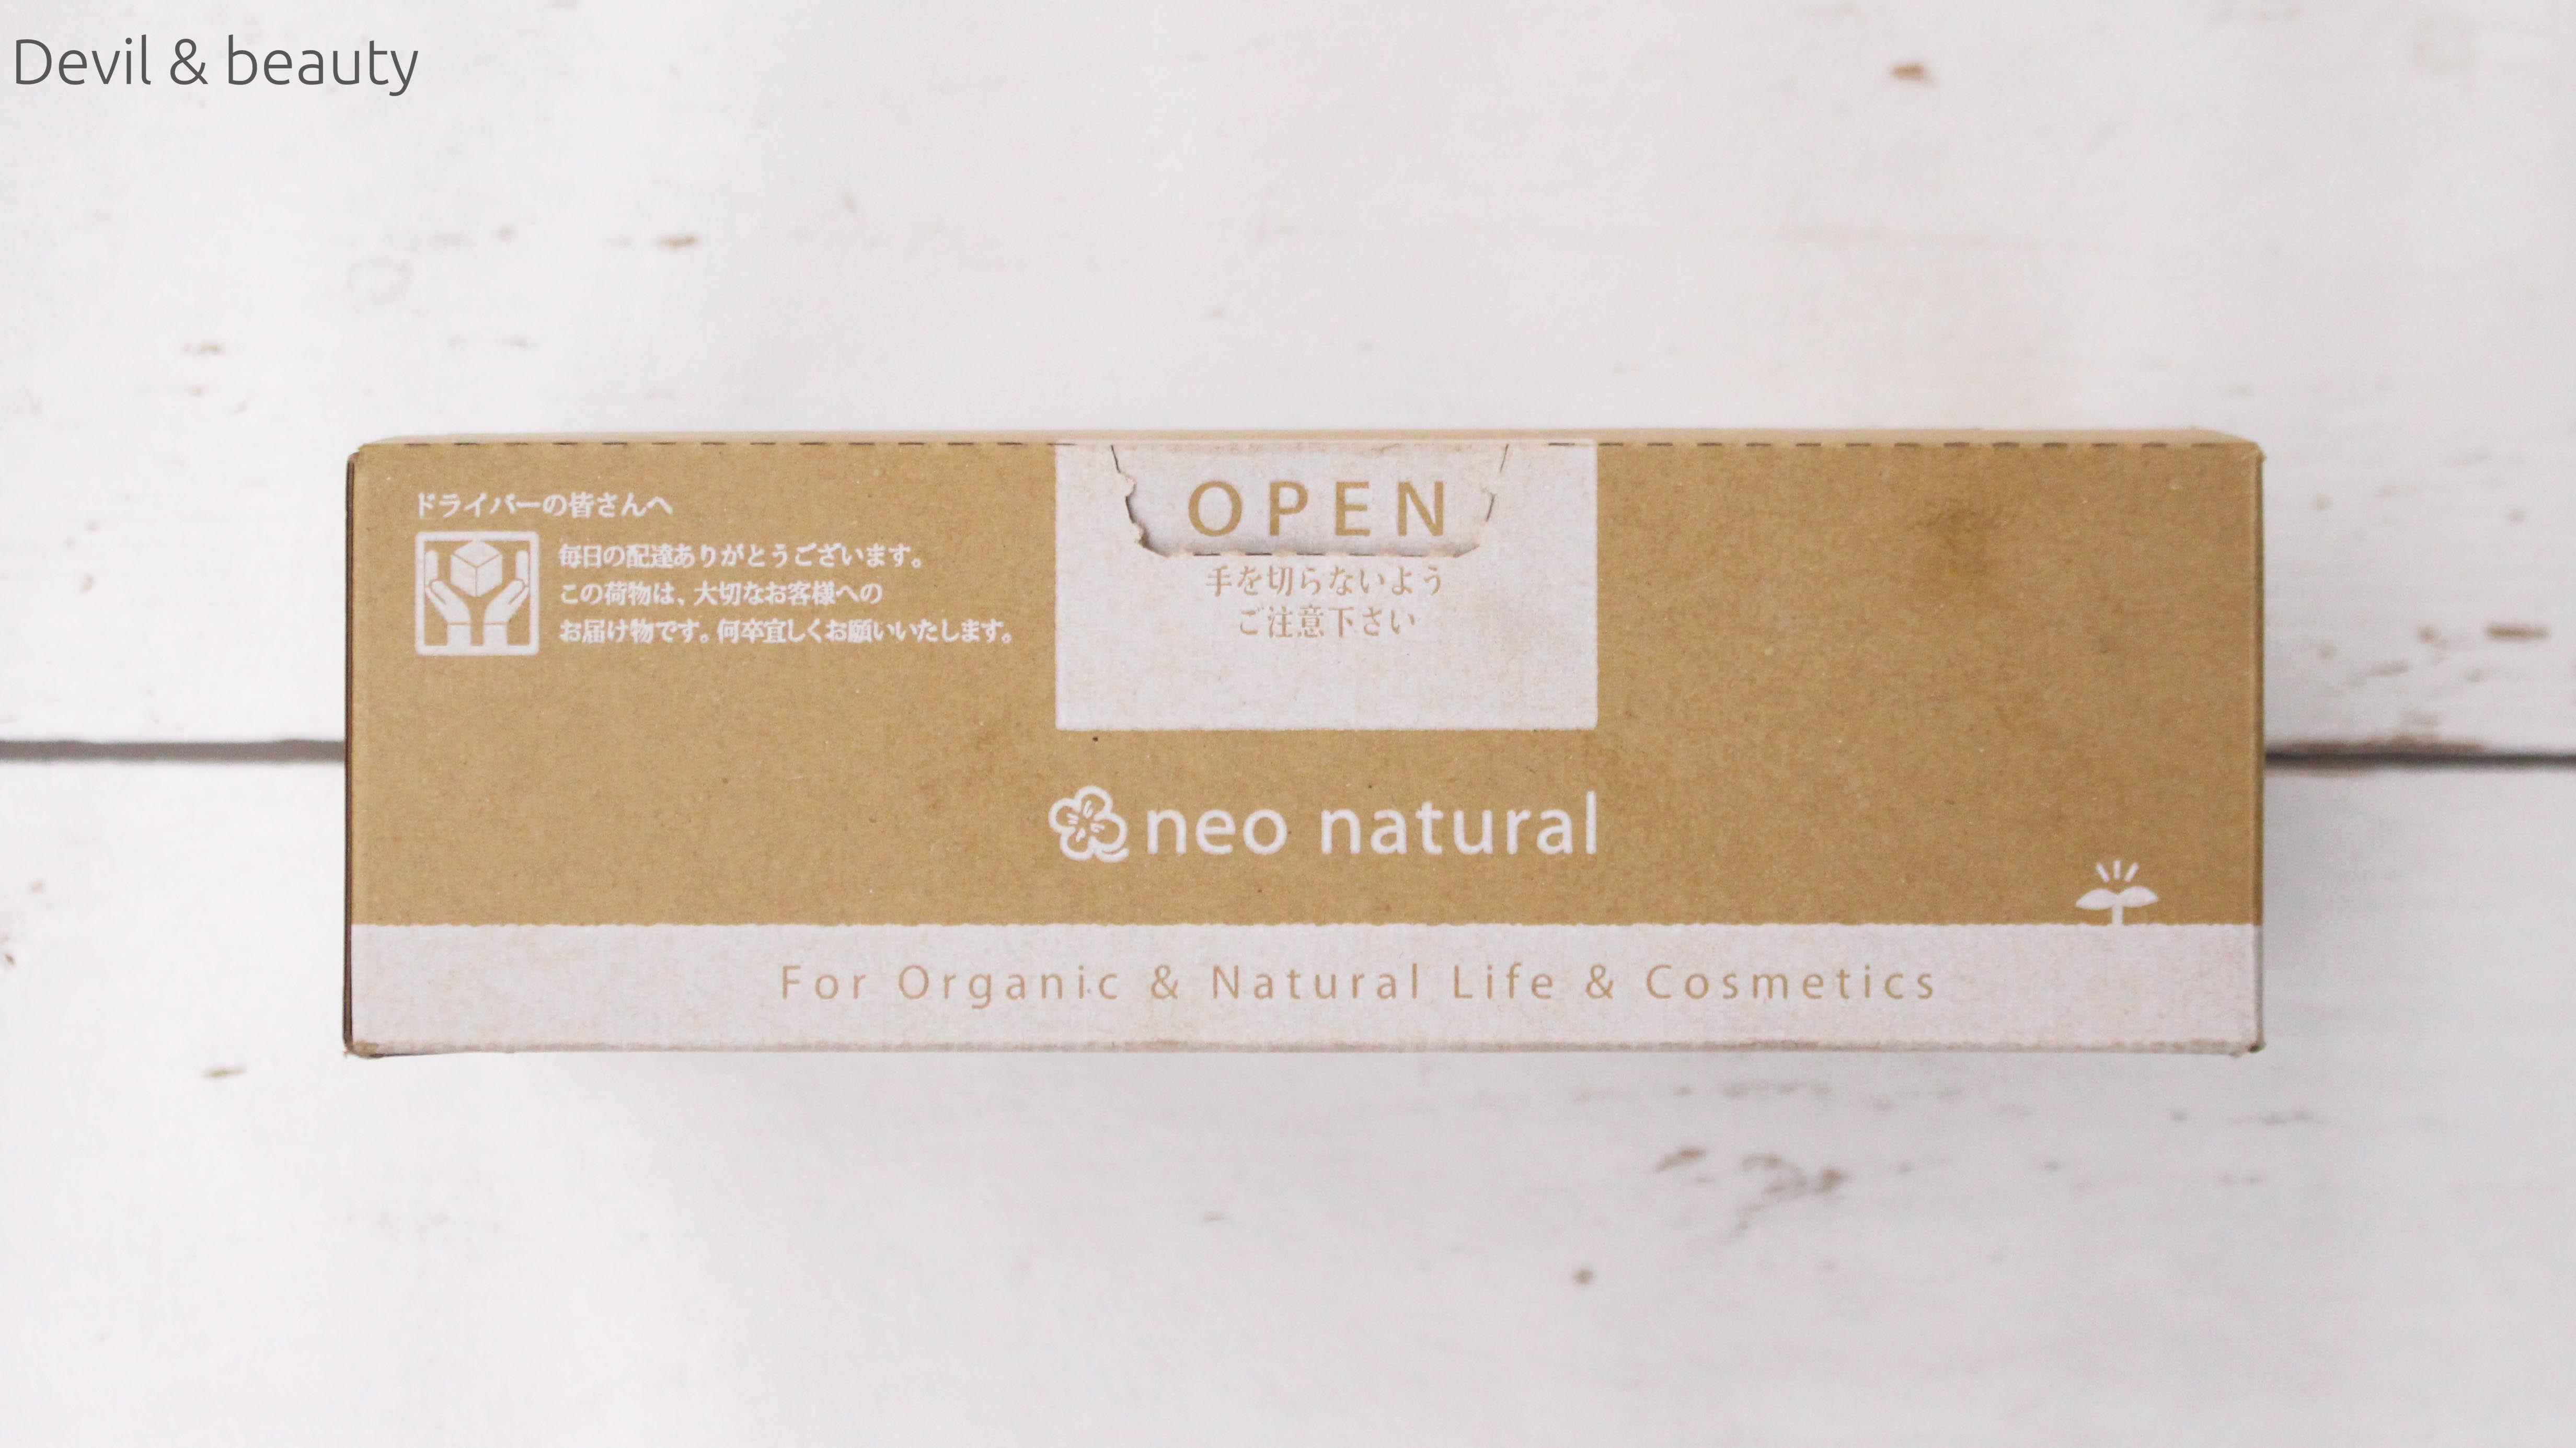 neo-natural-herbal-soap2 - image